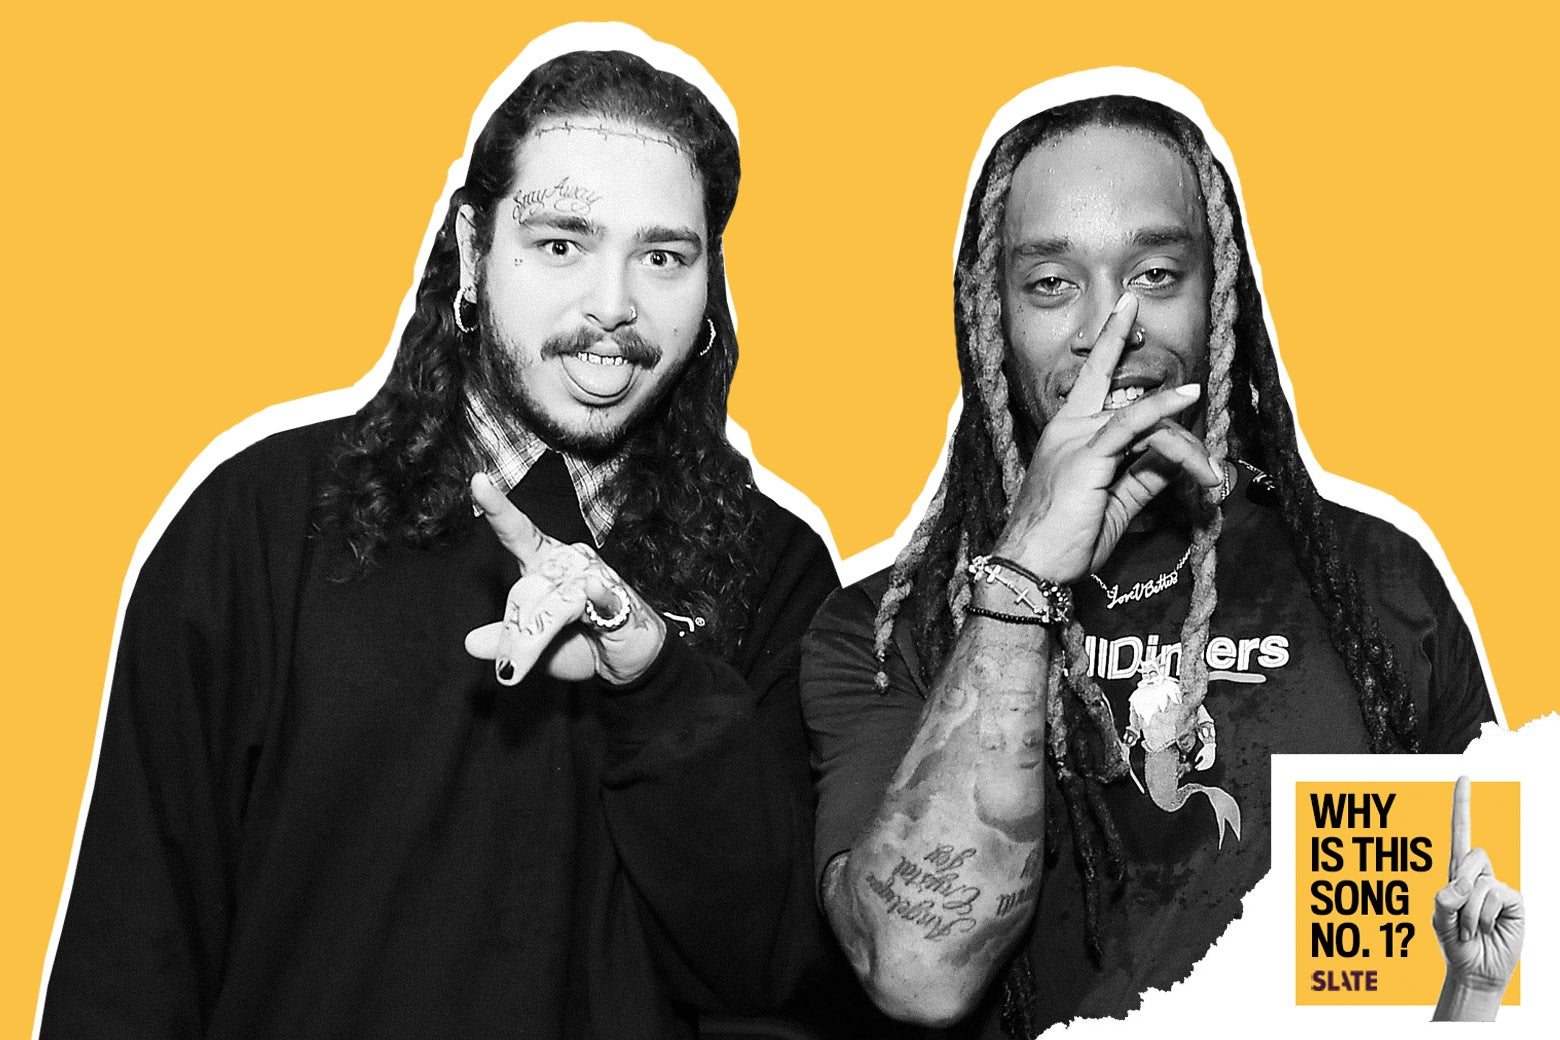 Post Malone and Ty Dolla Sign with the Why Is This Song No. 1? logo.